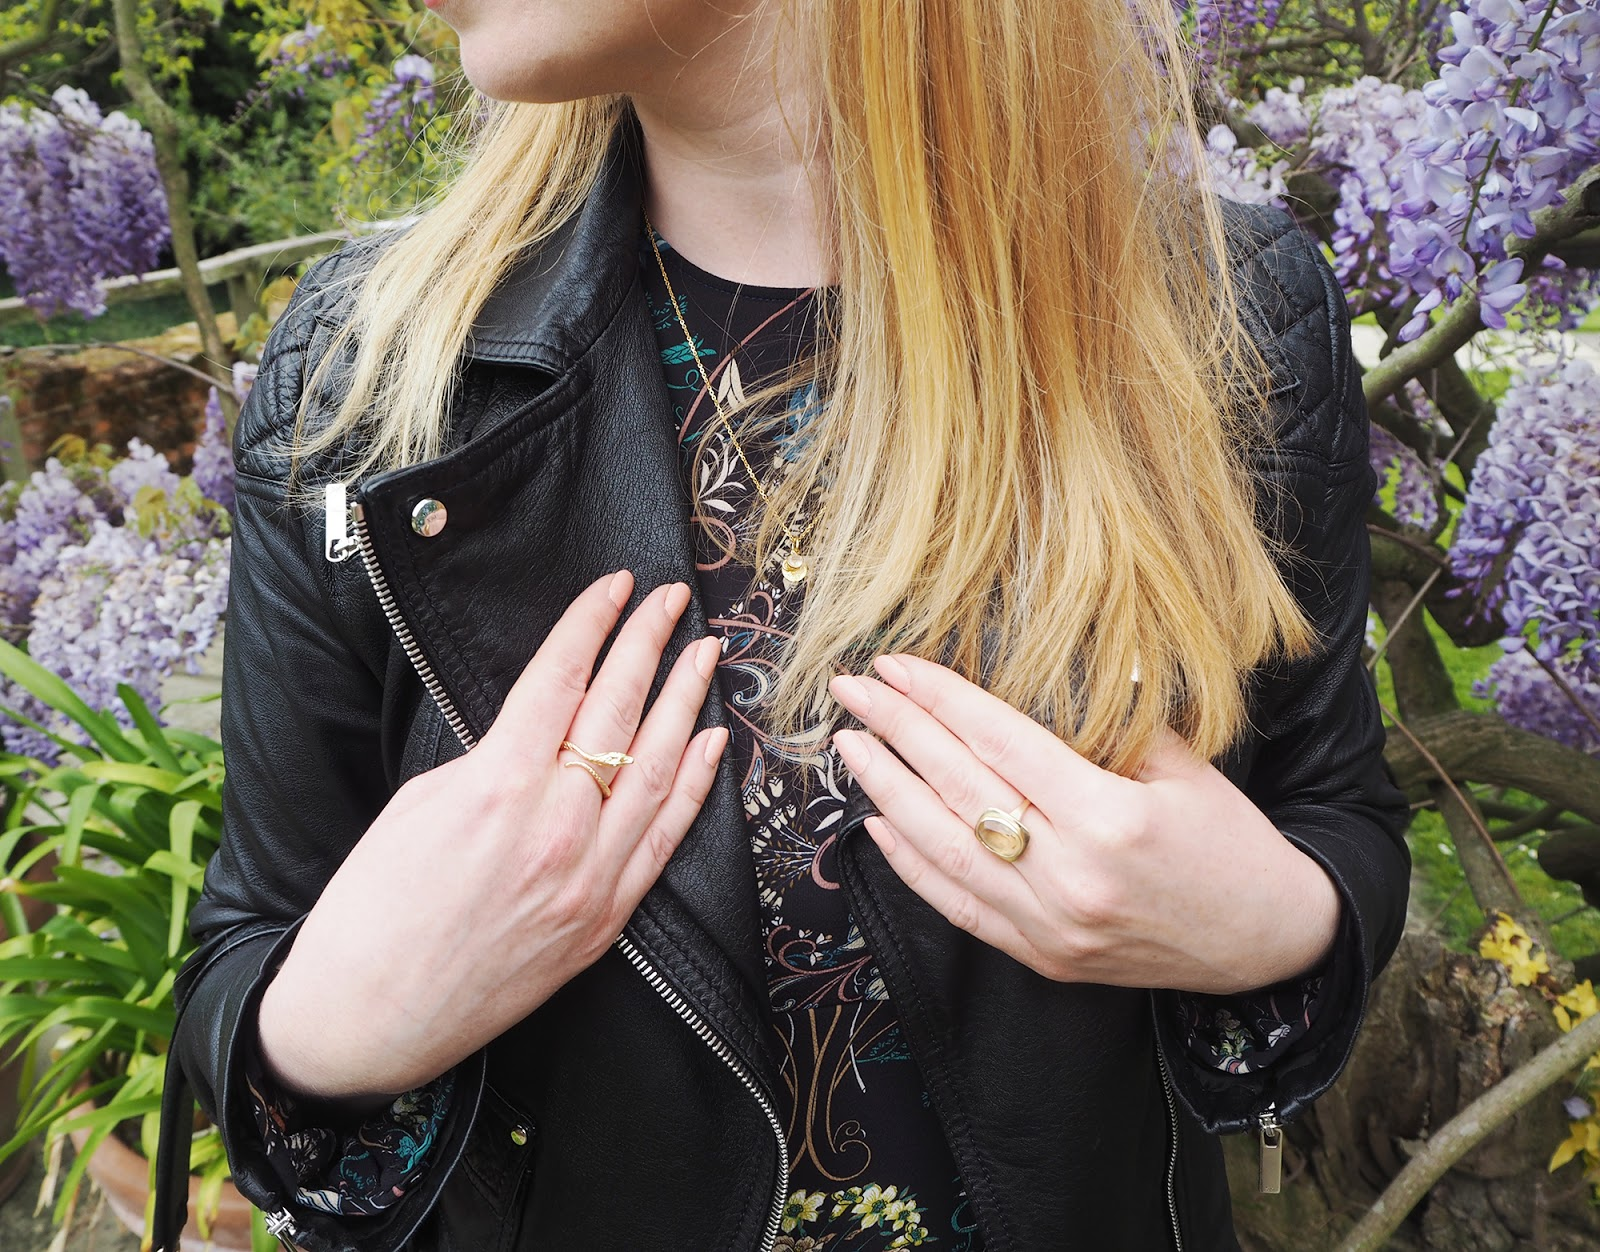 Outfit post - Zara 70s floral dress and leather accessories